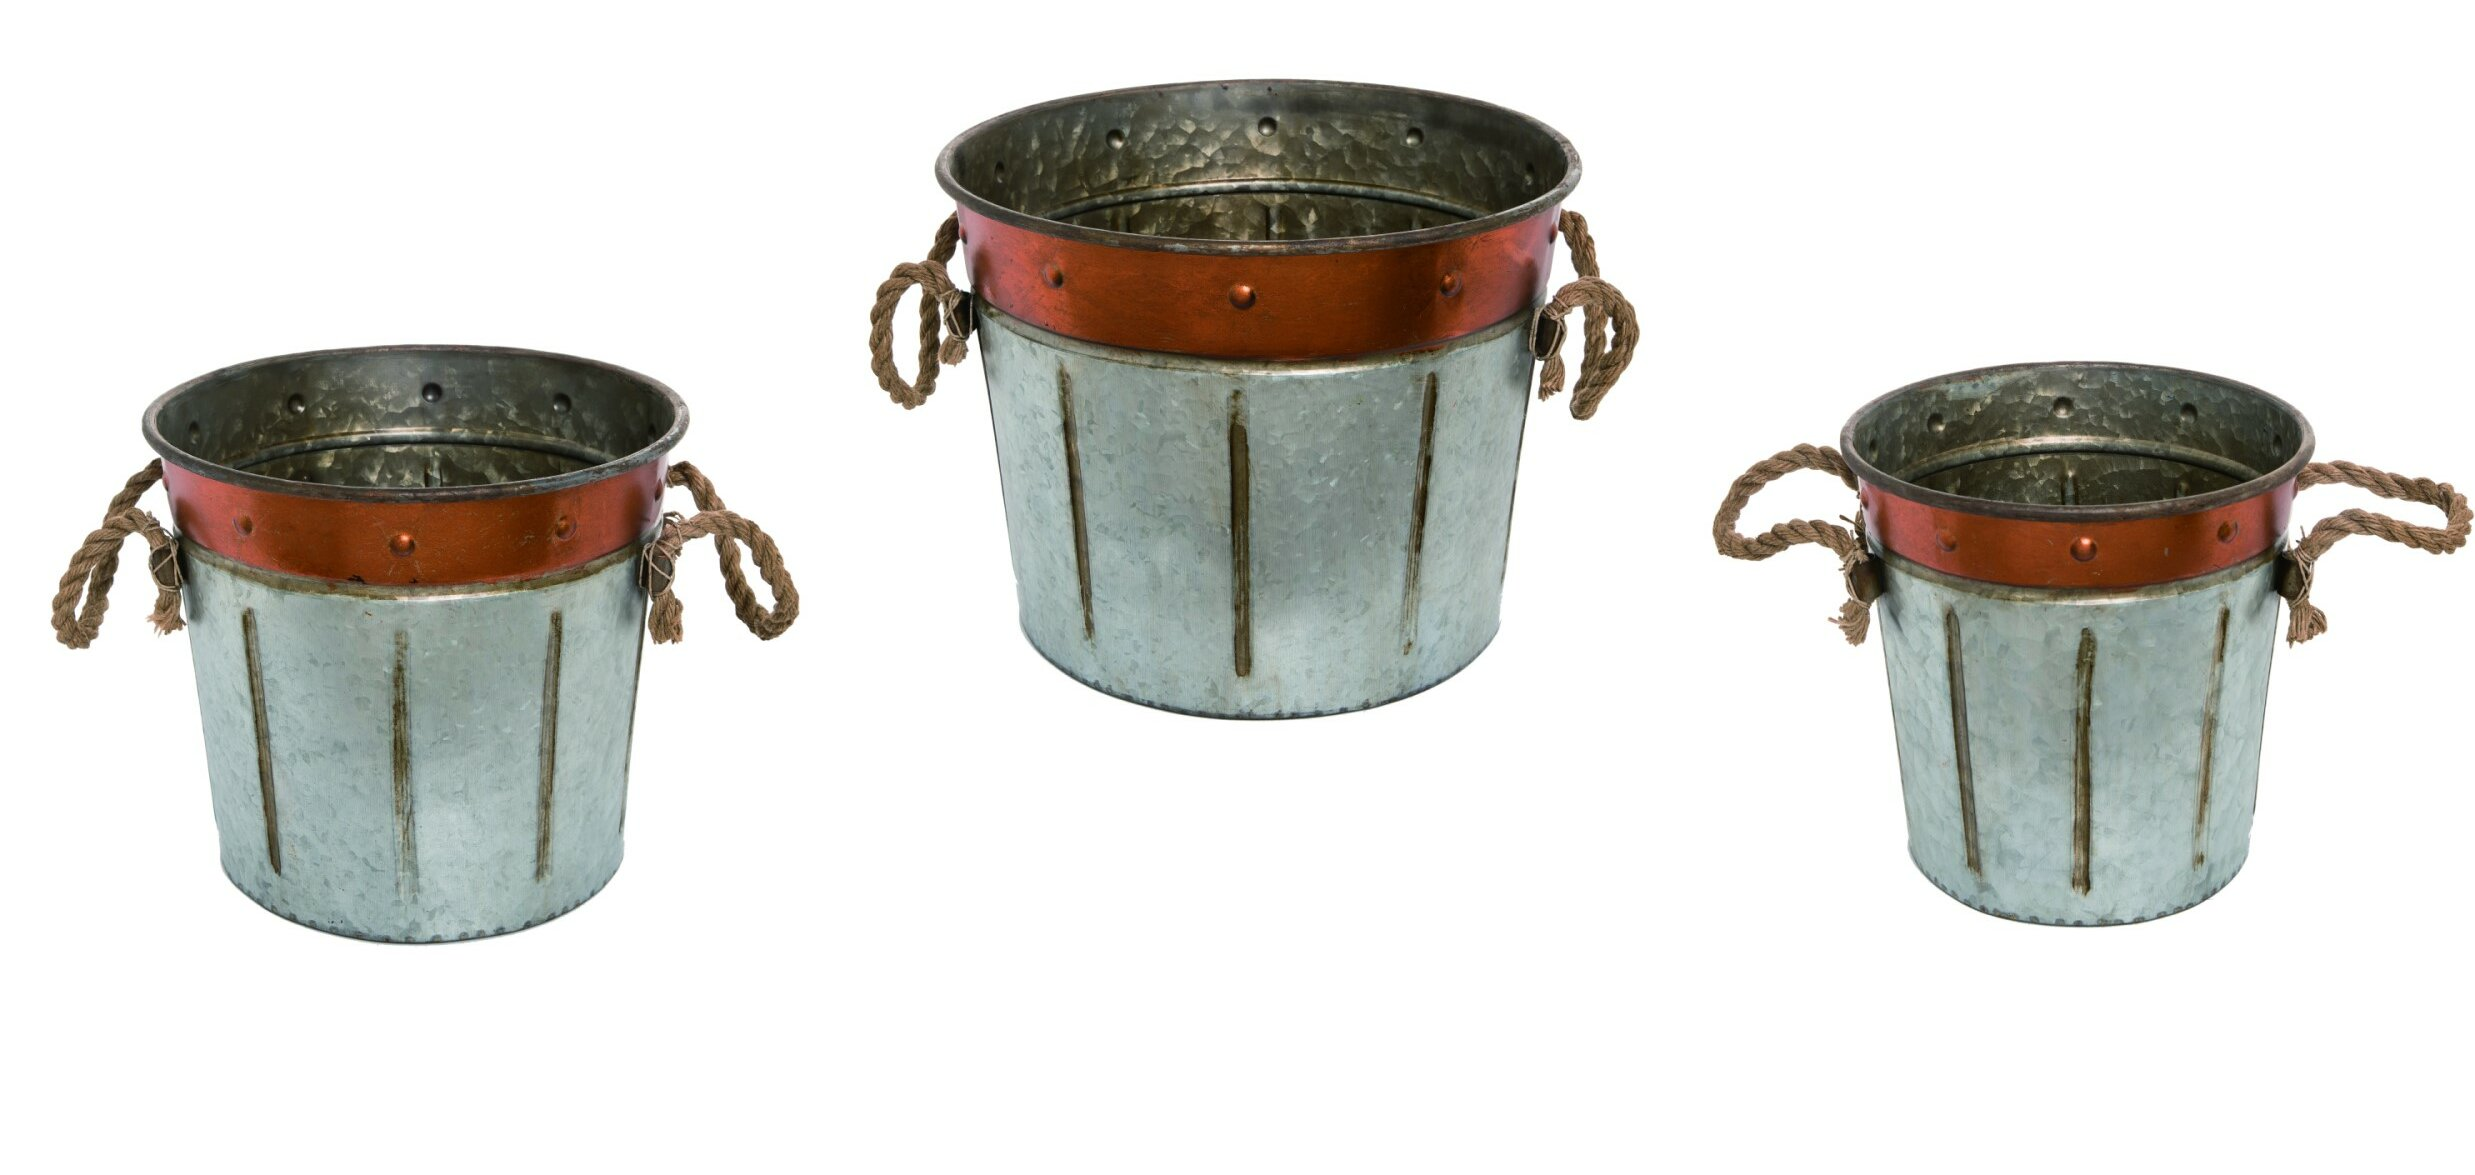 Gracie Oaks Harvest 3 Piece Metal Bucket Set Wayfair